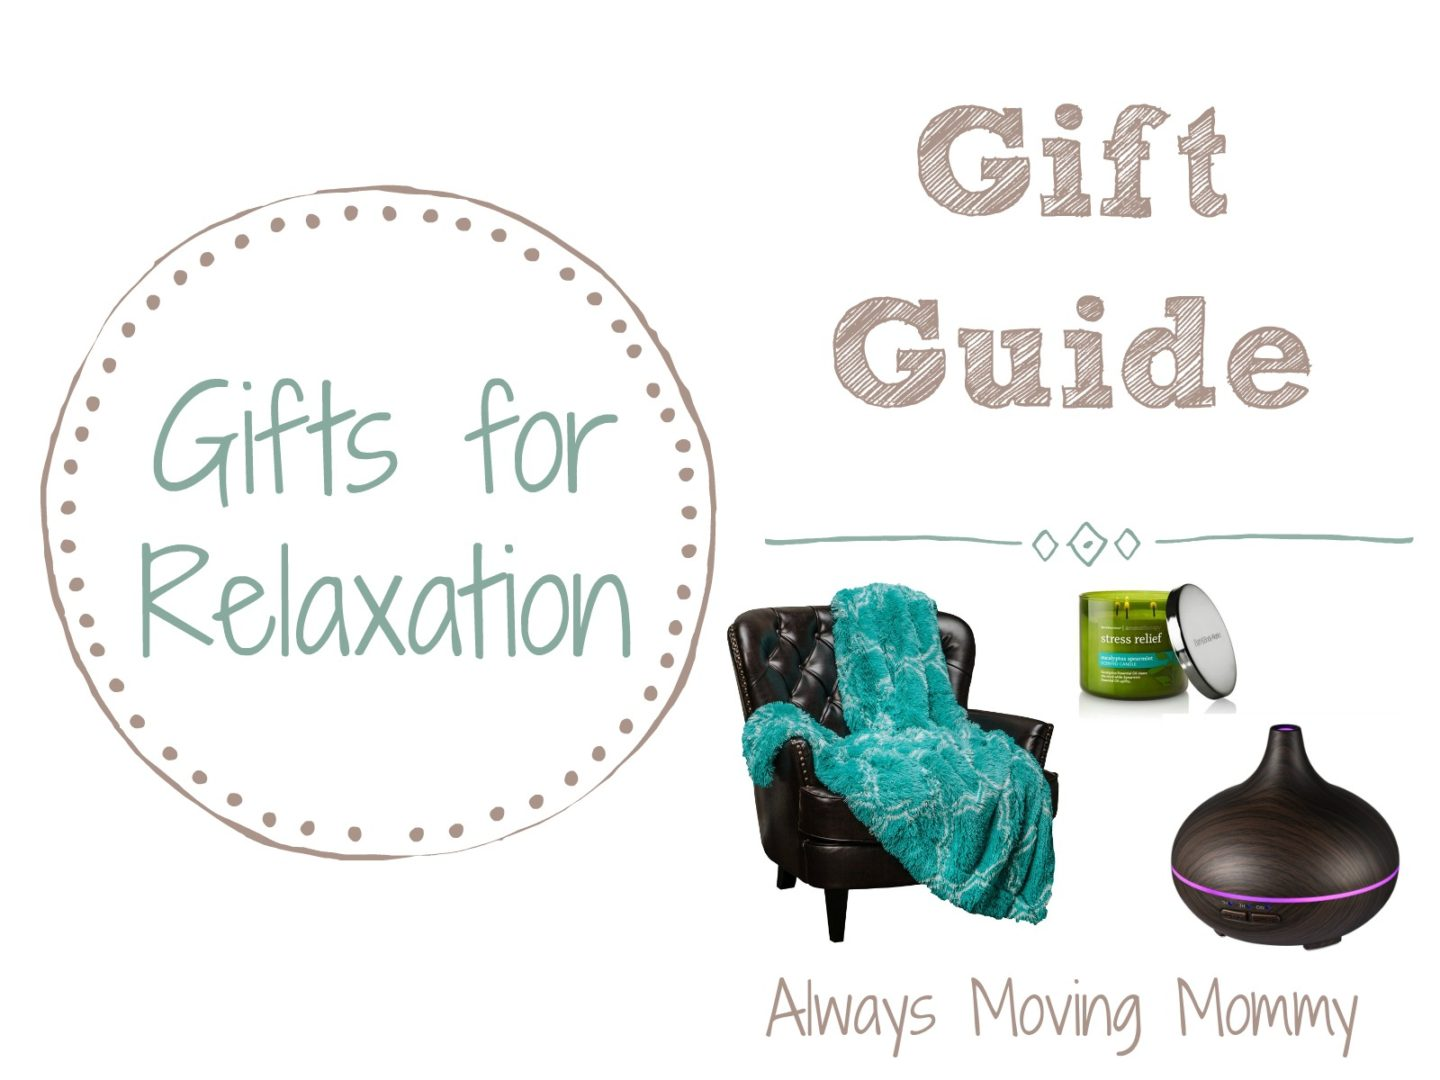 Gift Guide: Gift Ideas for Relaxation at Home | Always Moving Mommy | Need some ideas for getting a little relaxation at home? Here's a list of ideas